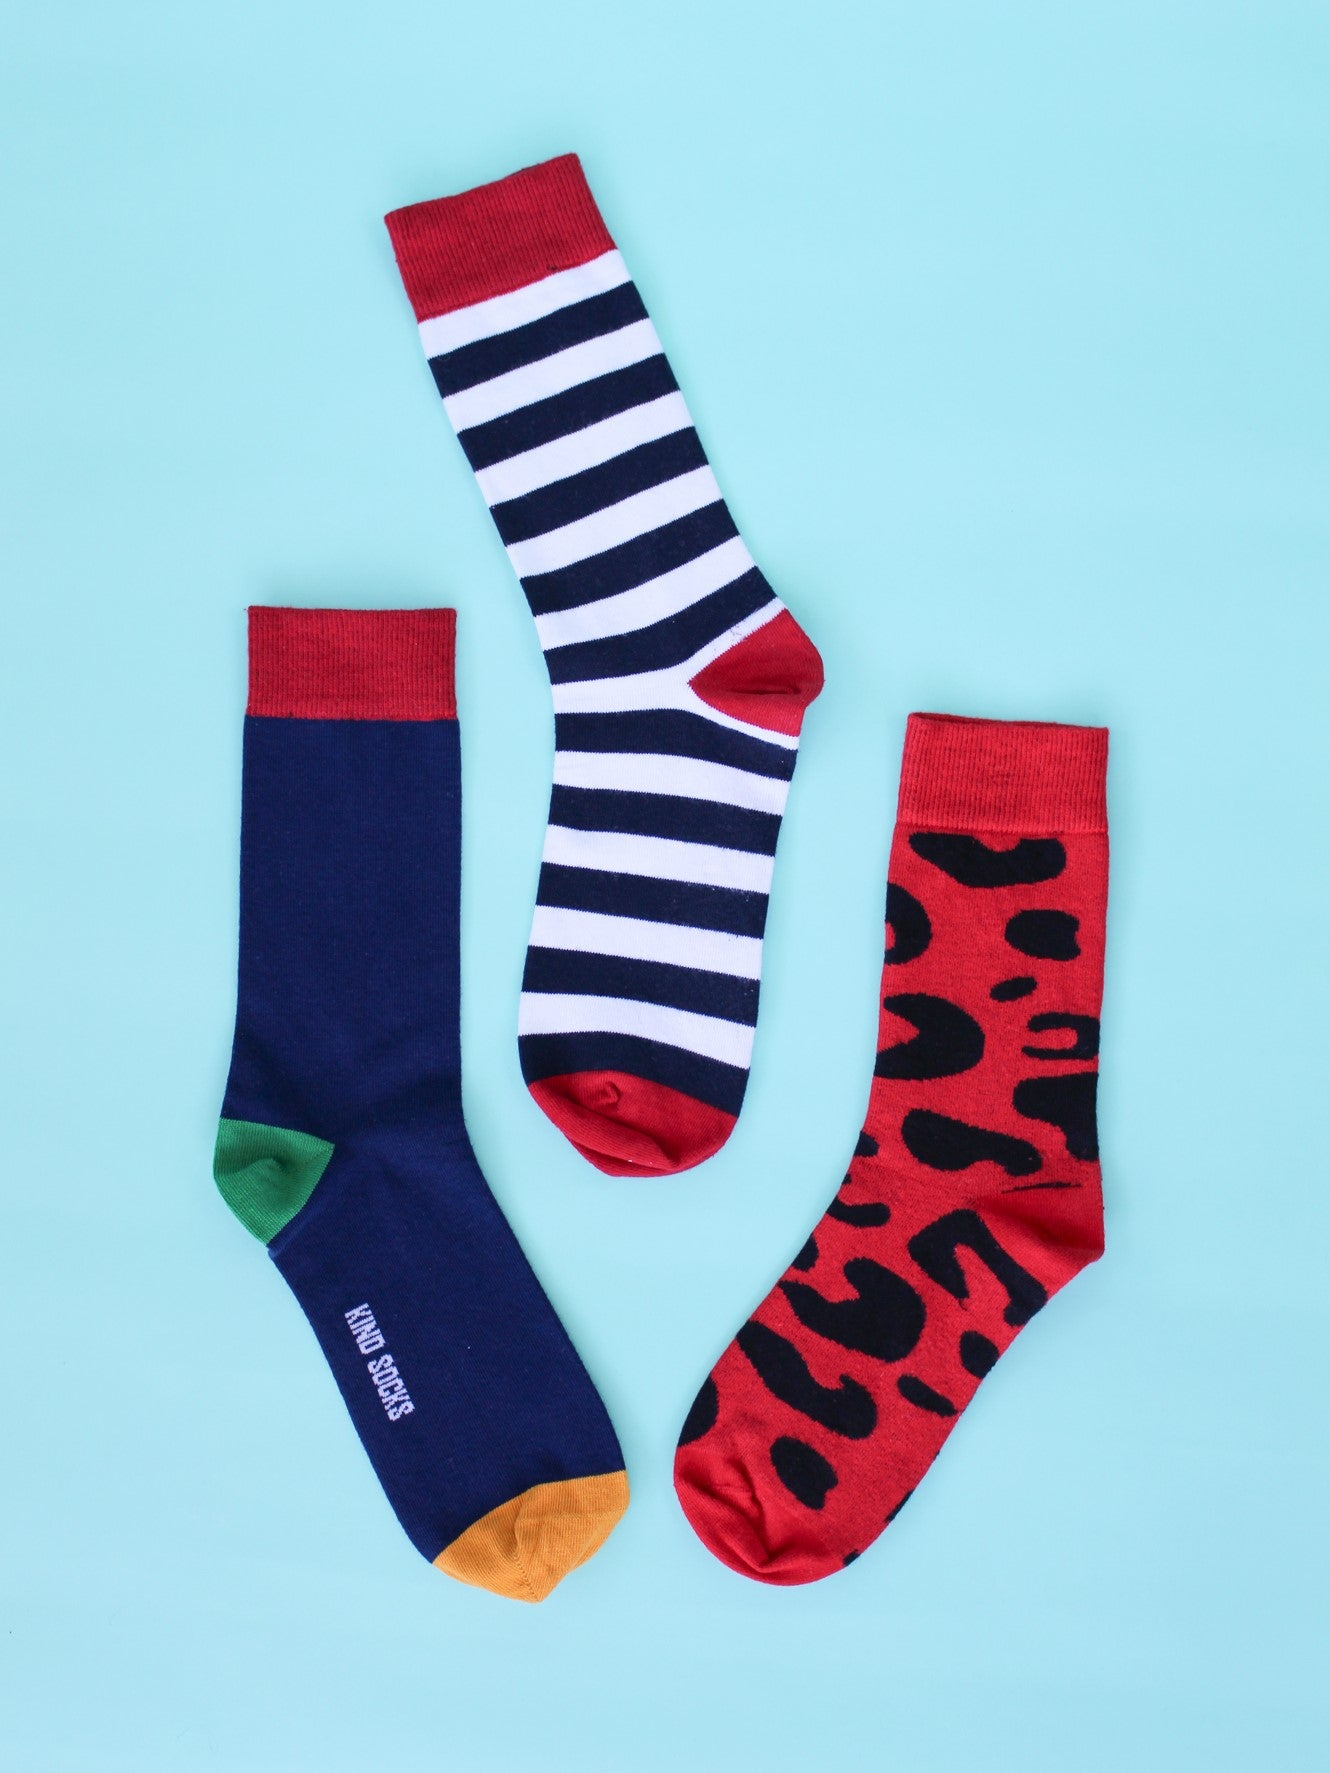 Navy organic kind socks with a mustard yellow toe patch, lime green heel and red ankle trim, navy and white striped organic kind socks with a red trim and bright red organic kind socks with a black leopard-print pattern are laid out on a teal blue backdrop.